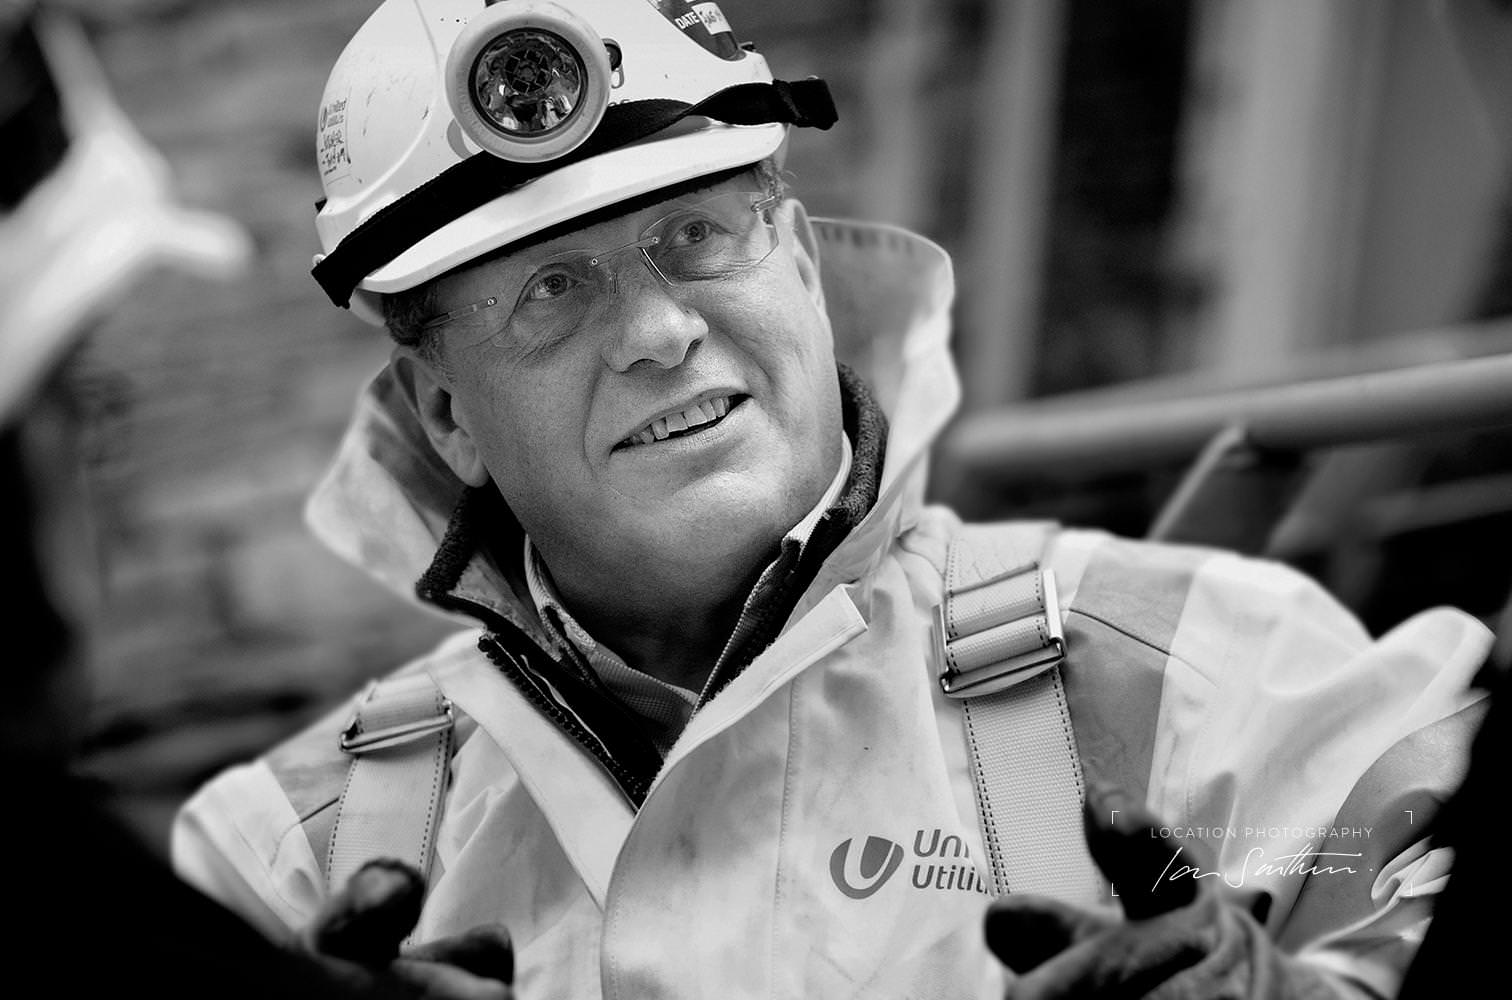 Engineer Portrait corporate photography